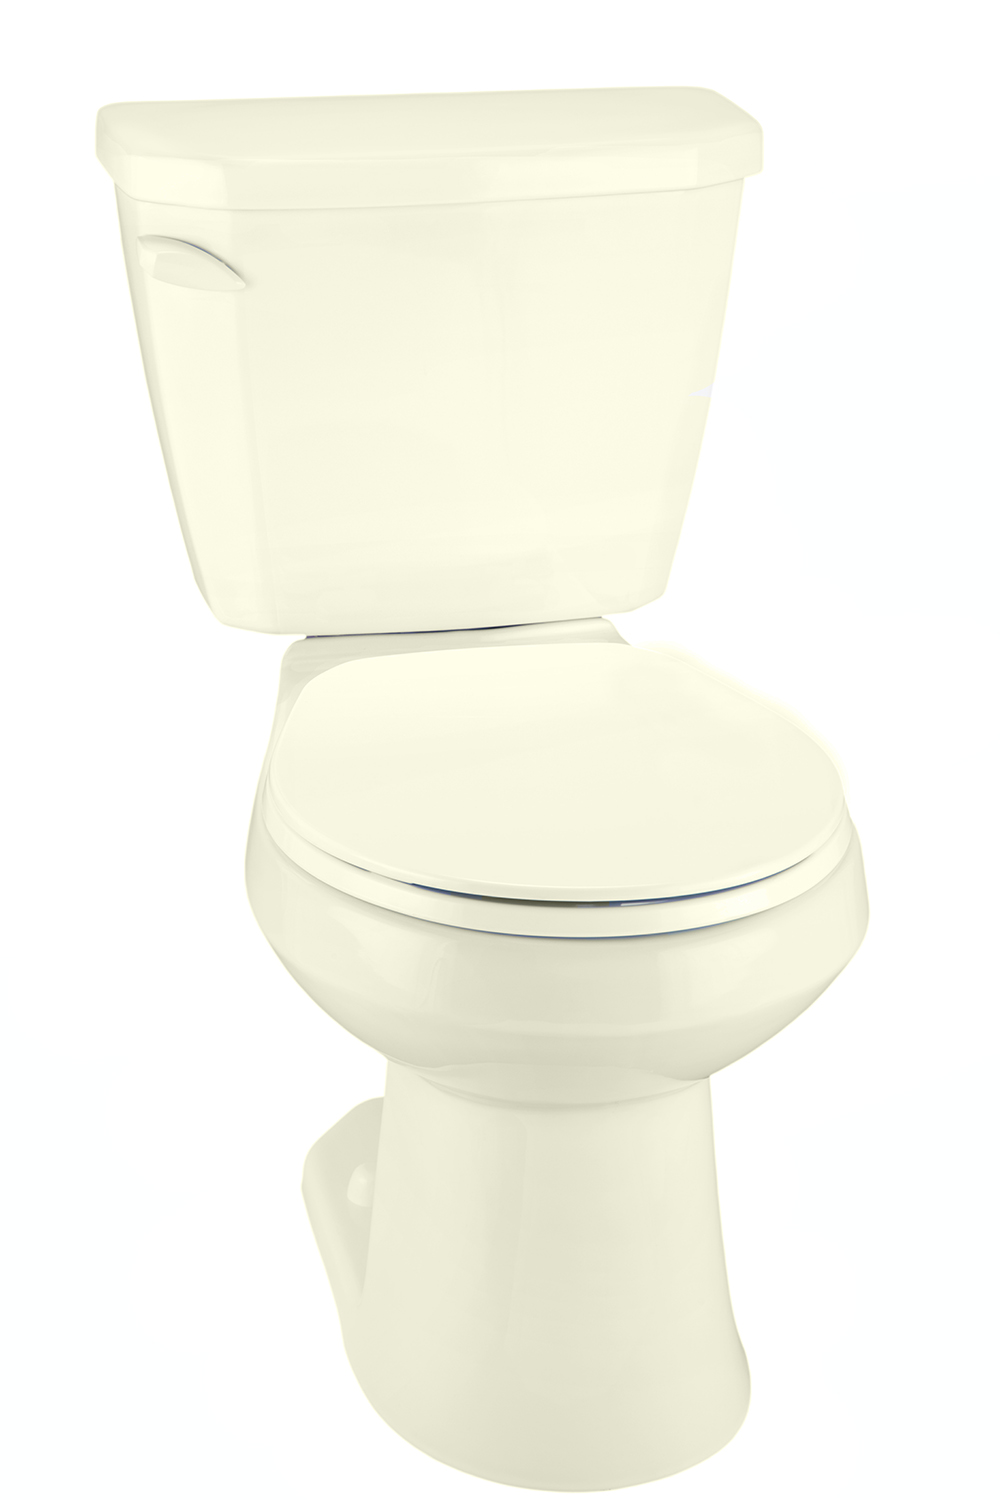 Outstanding Viper 1 6 Gpf 12 Rough In Two Piece Round Front Toilet Short Links Chair Design For Home Short Linksinfo